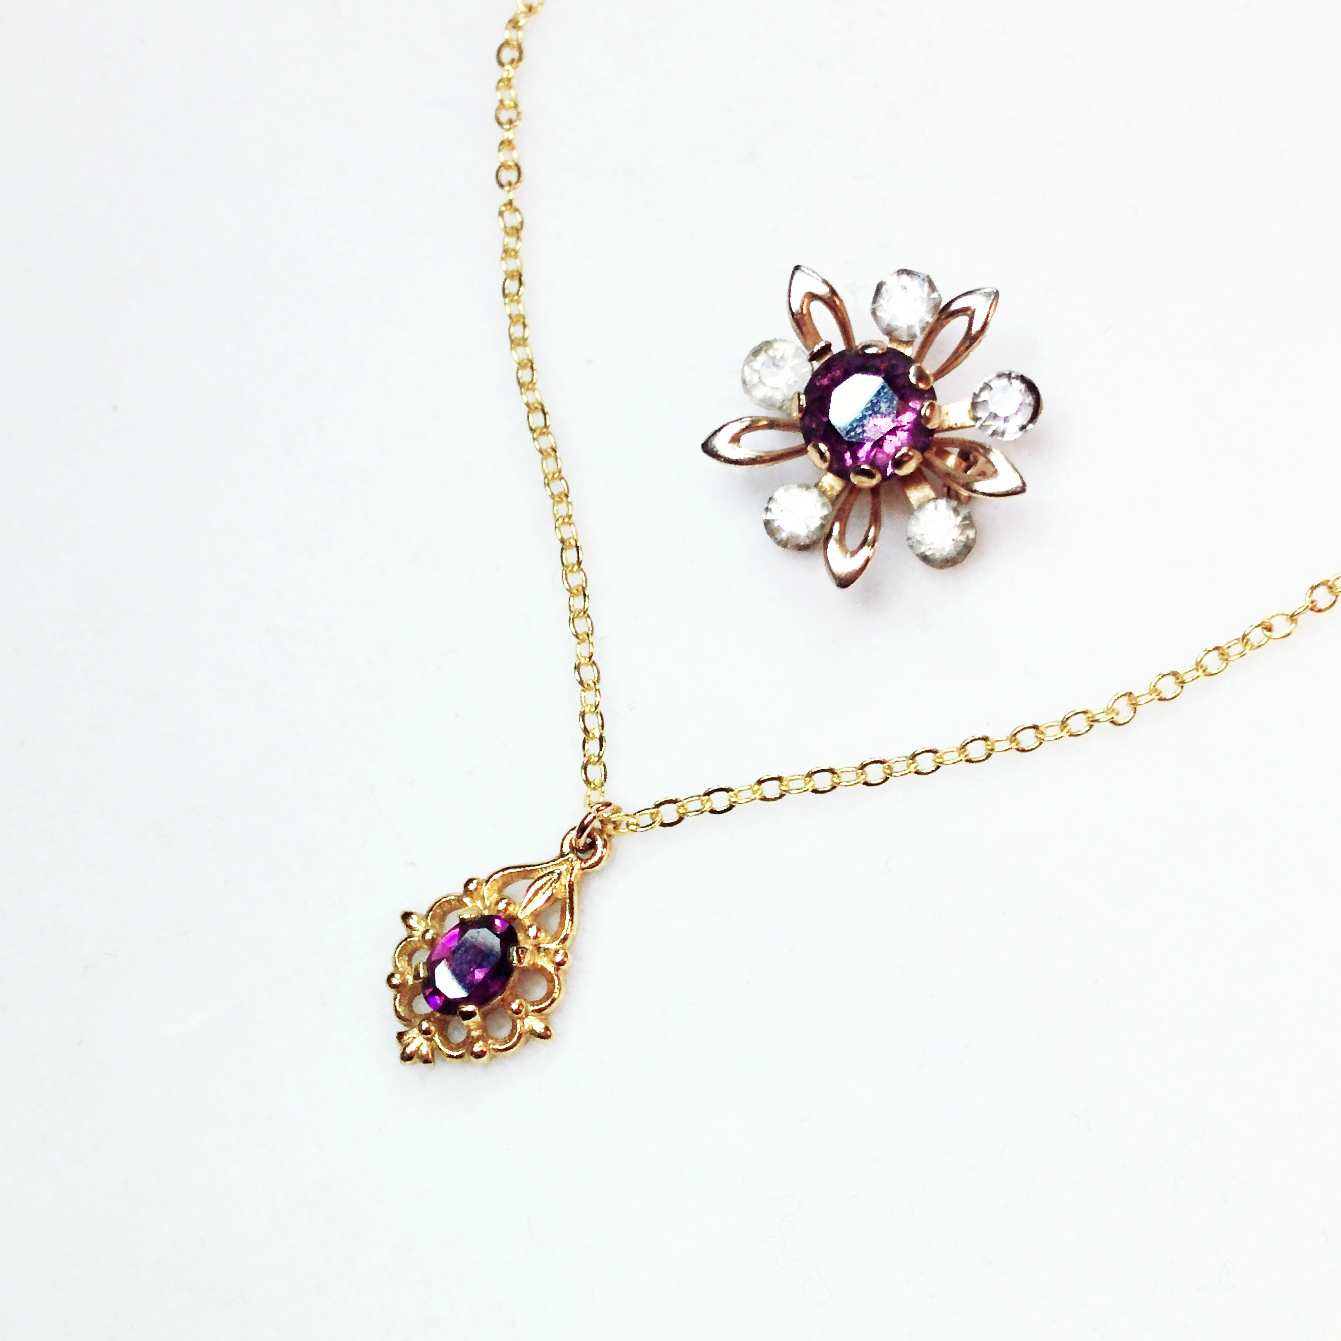 New colourful springtime treasures - vintage rhinestone brooch and recycled vintage piece made into a collar length necklace